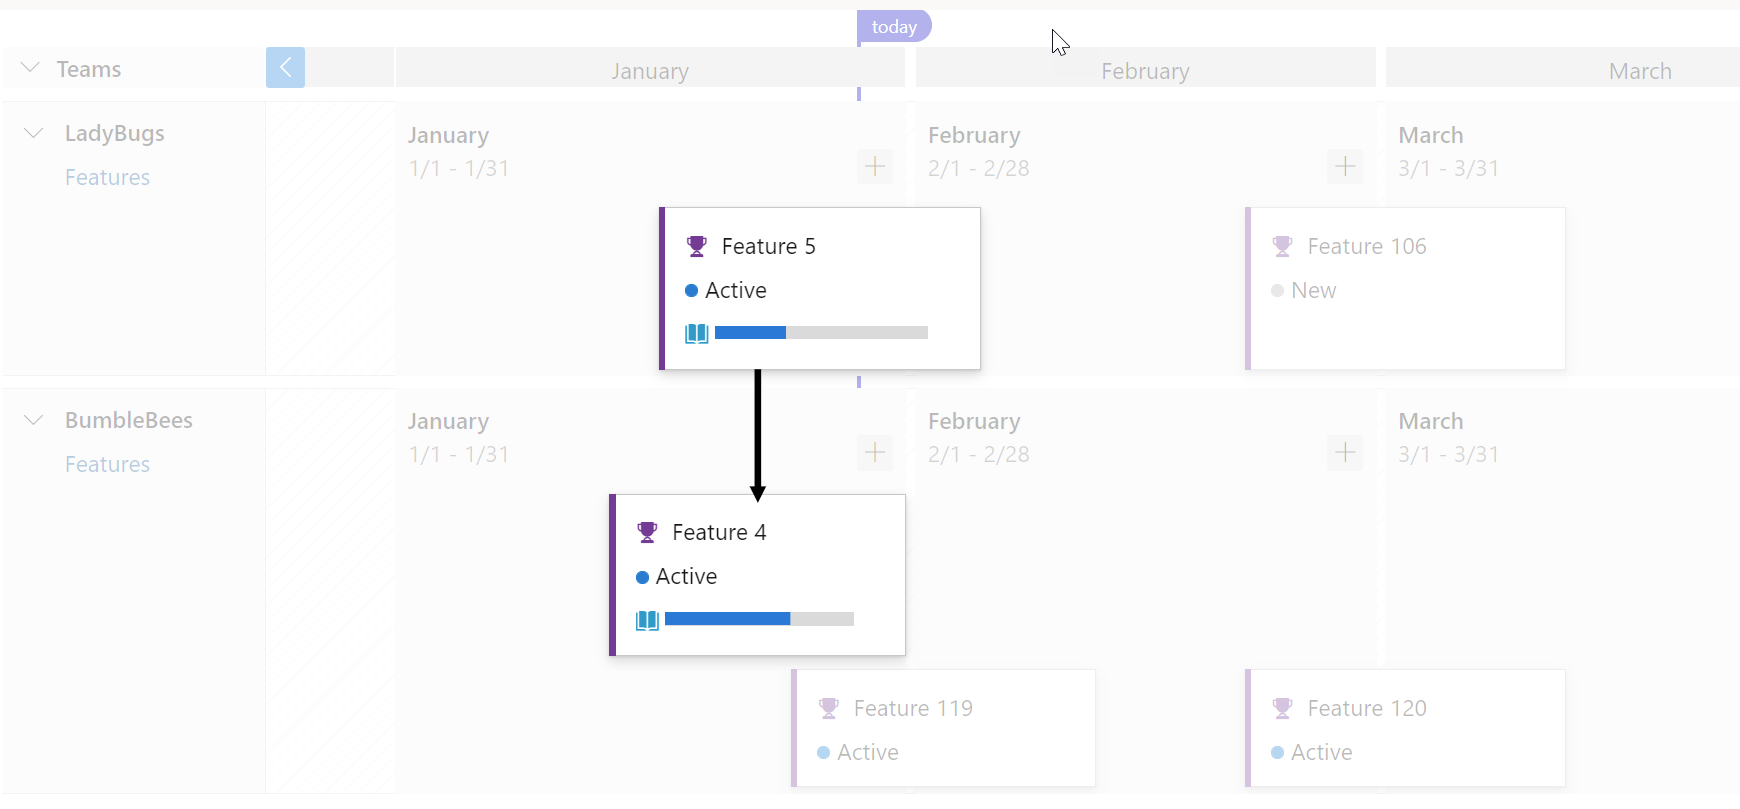 Dependencies work items visualized with directional arrow lines between the respective work items